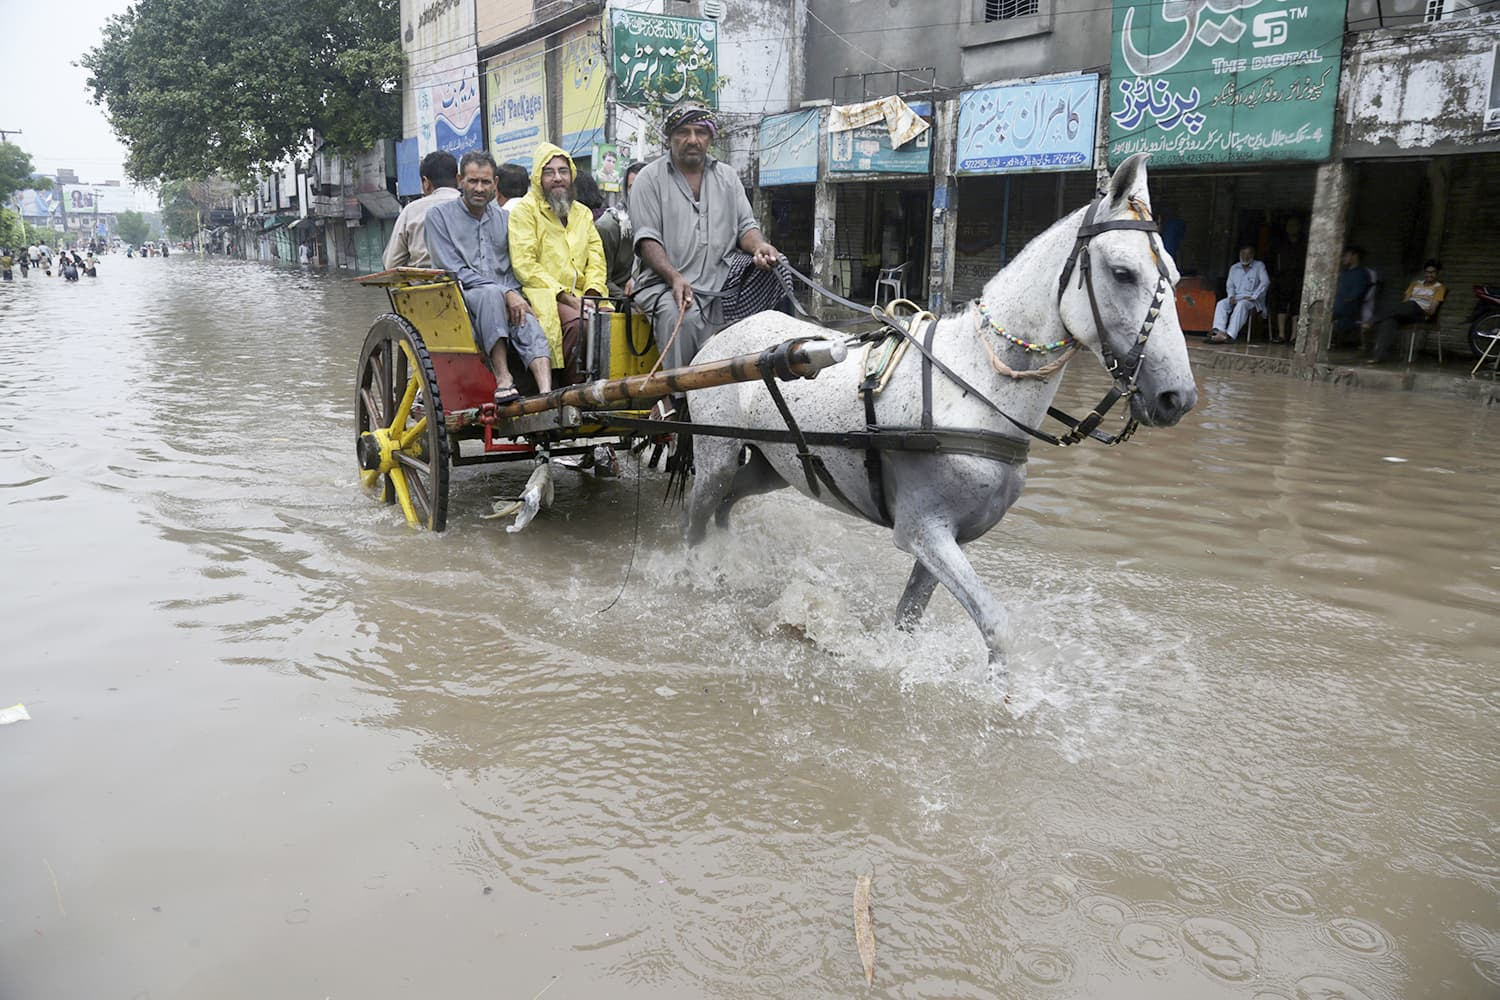 A horse-cart owner carries people through a heavily-flooded street AP